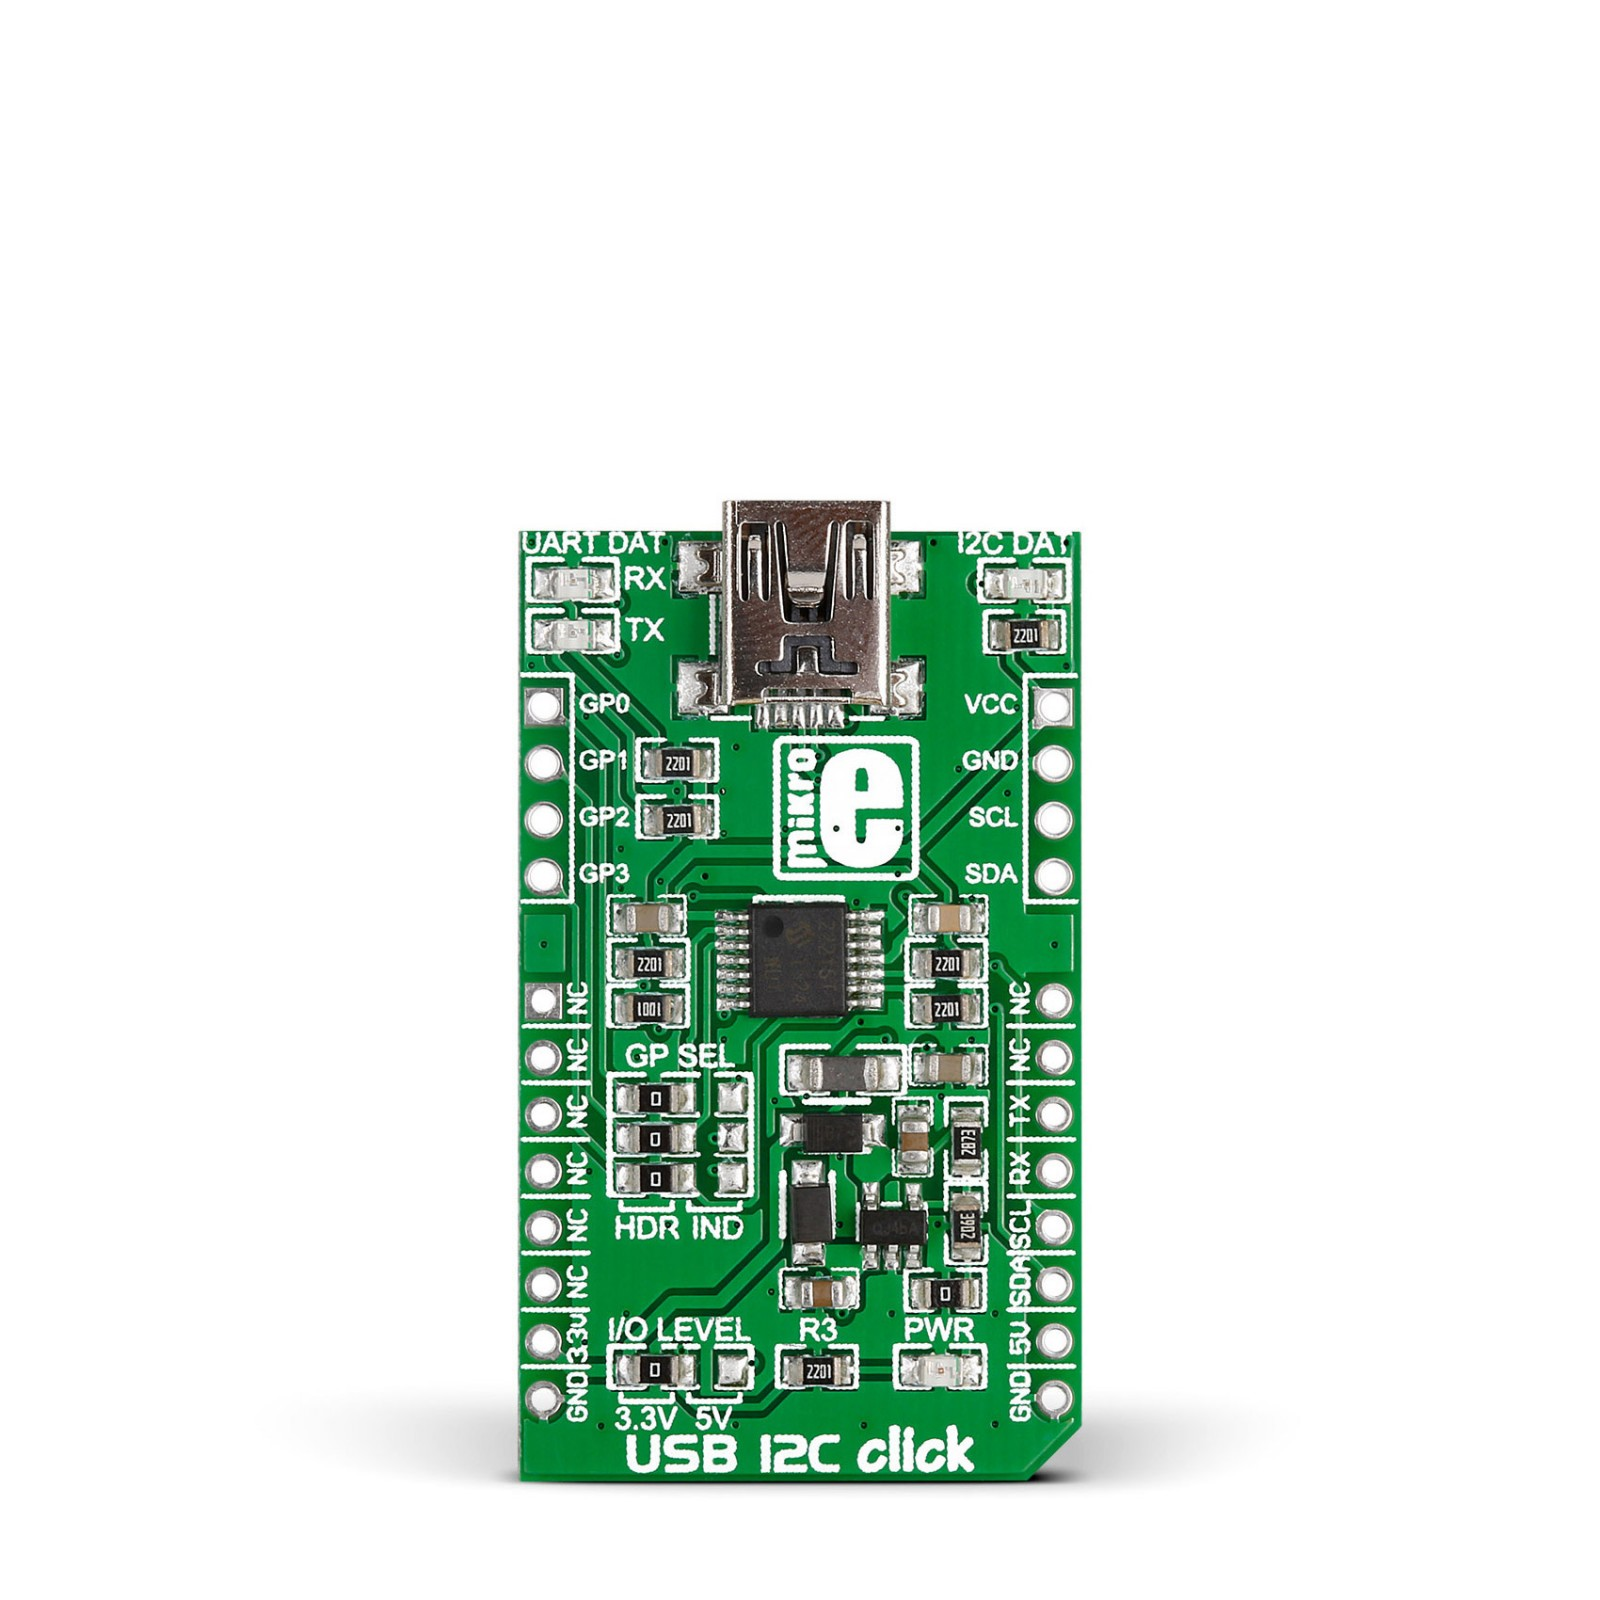 Usb I2c Click Board With Mcp2221 To Uart Converter Interface Schematic Mgctlbxnmzp Mgctlbxv5112 Mgctlbxlc Mgctlbxpprestashop